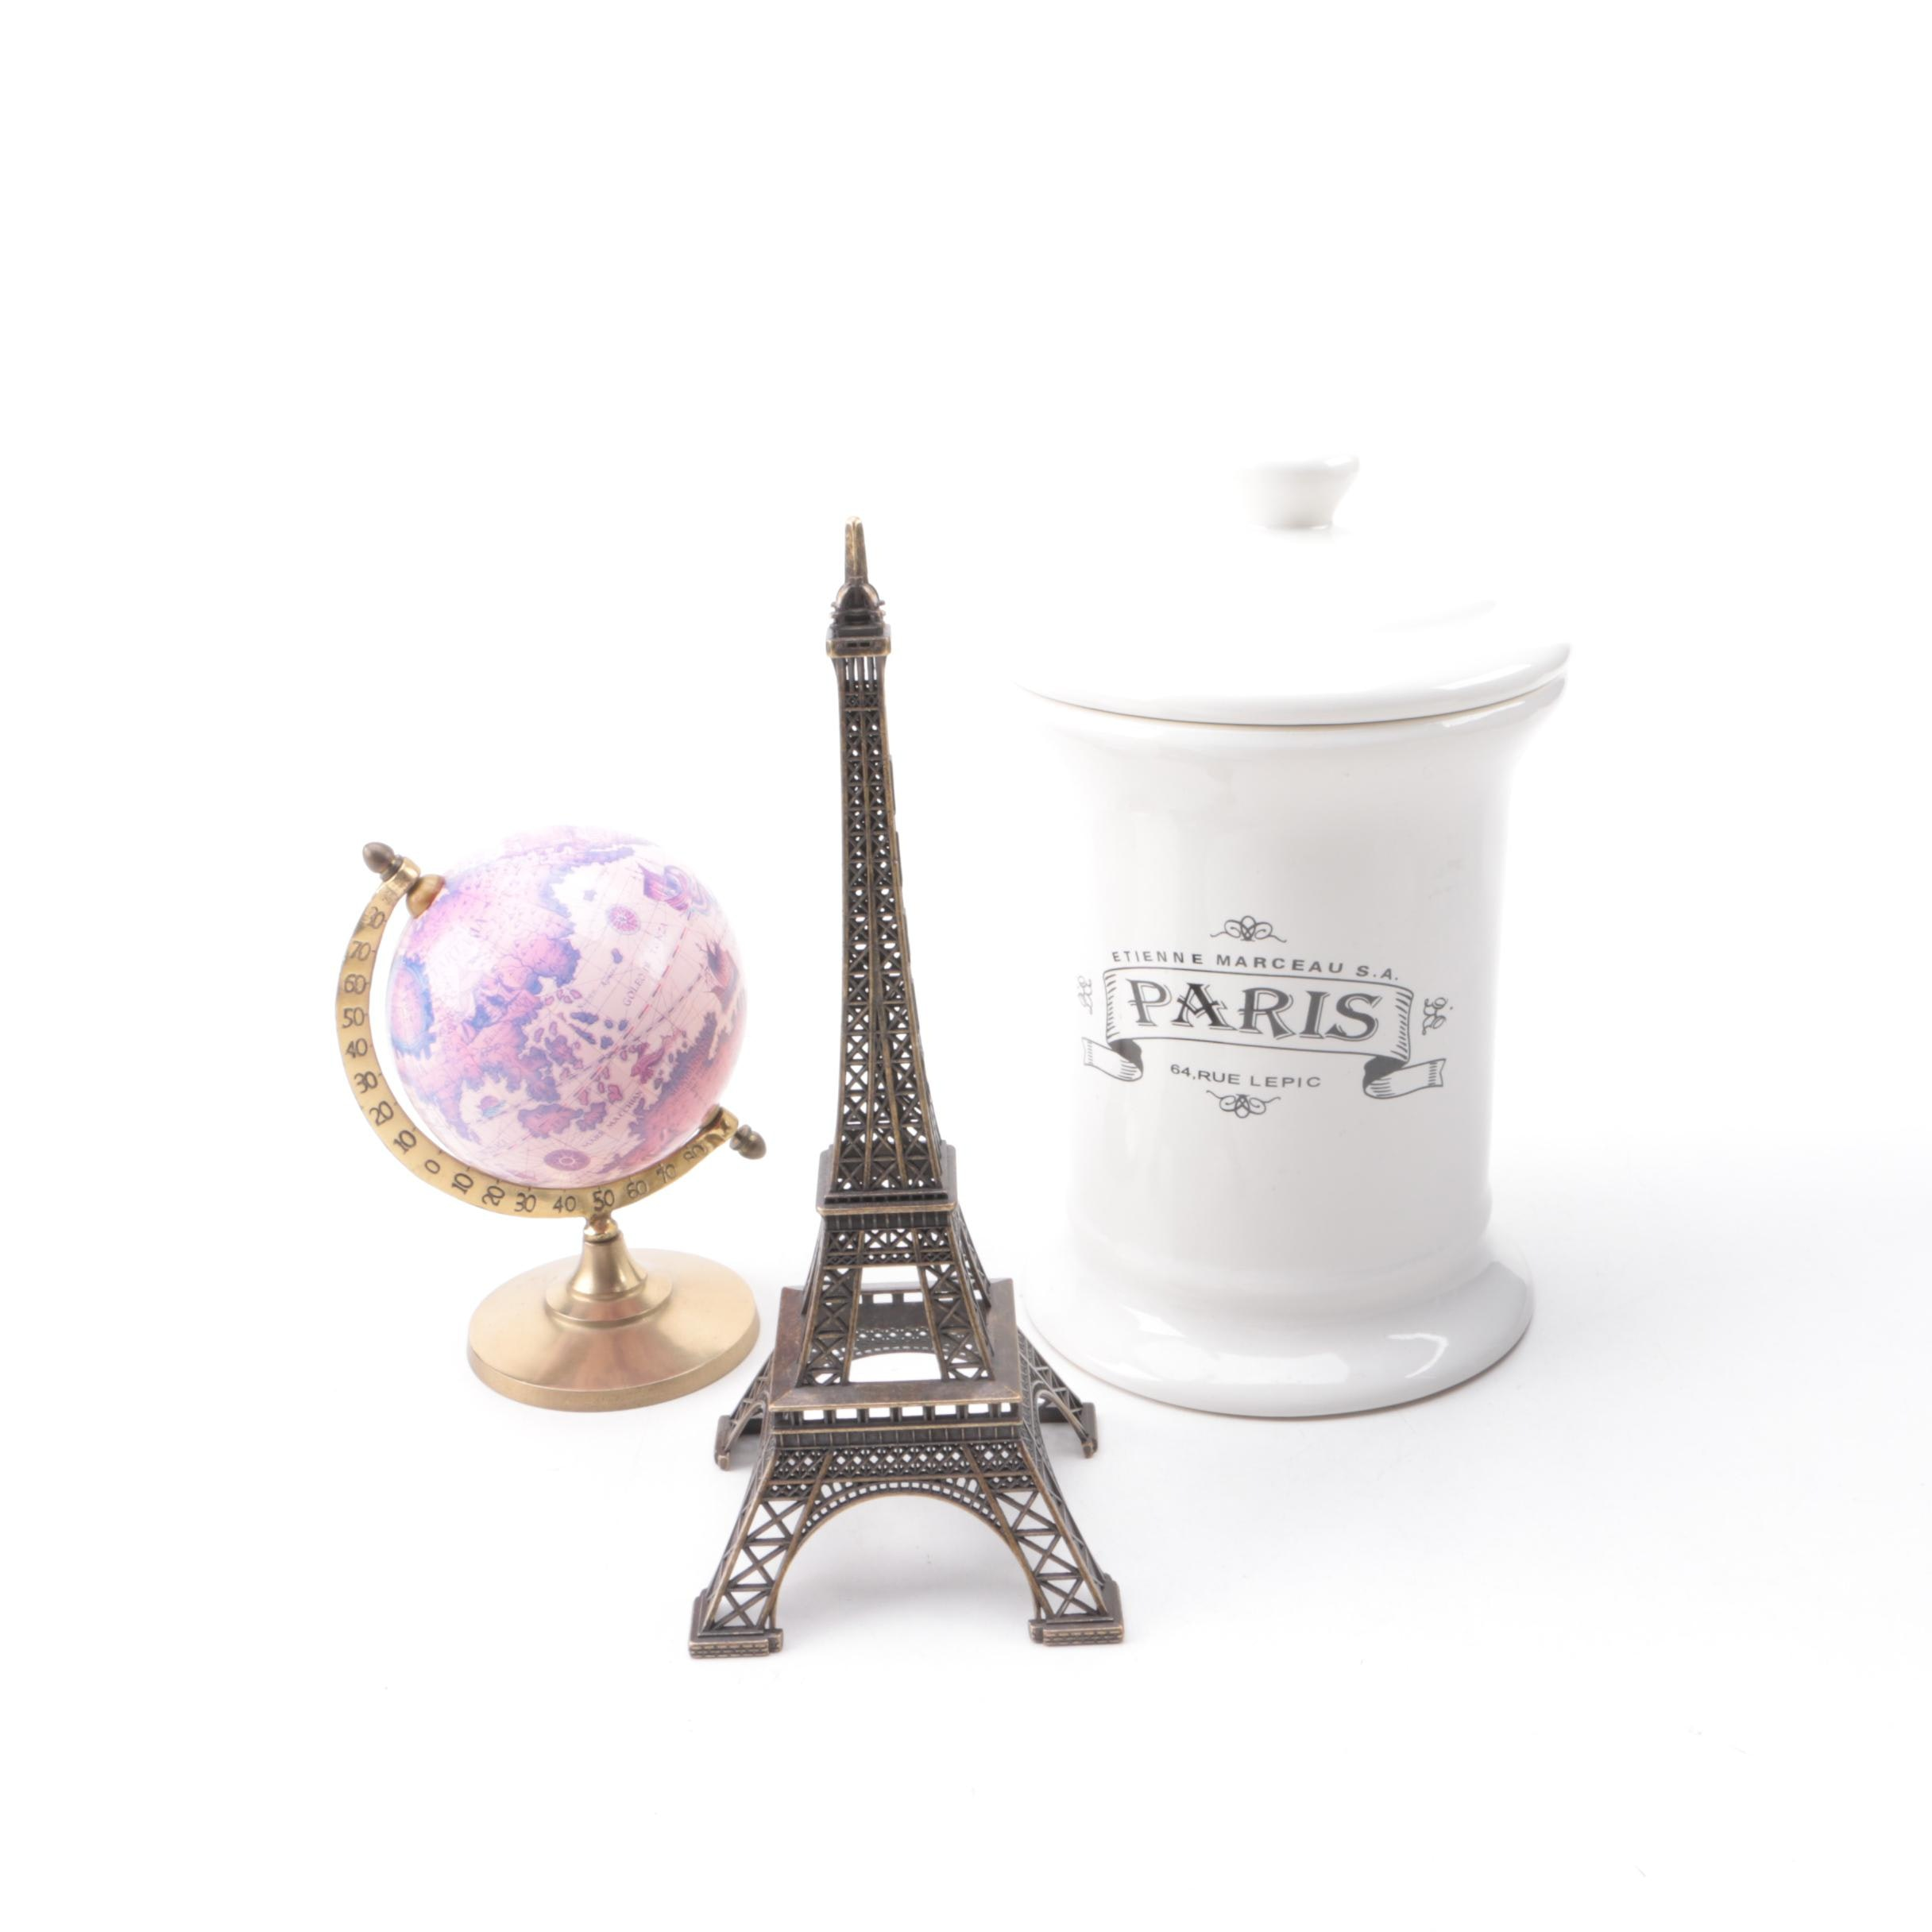 Paris Themed Decor and Miniature Globe